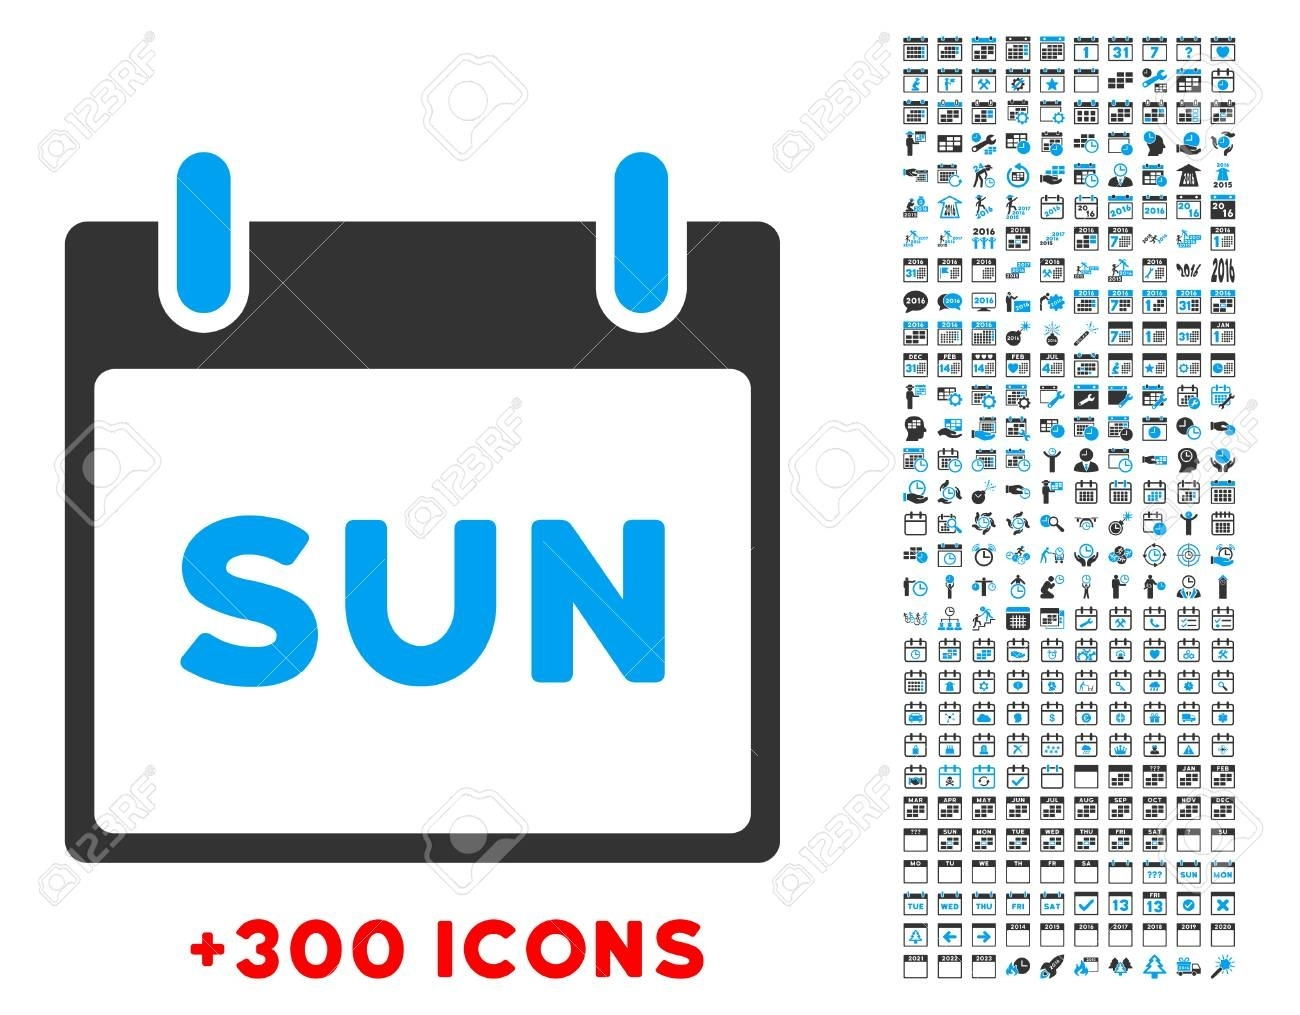 Sunday Vector Pictogram With Additional 300 Date And Time Management with Time Management Monday To Sunday